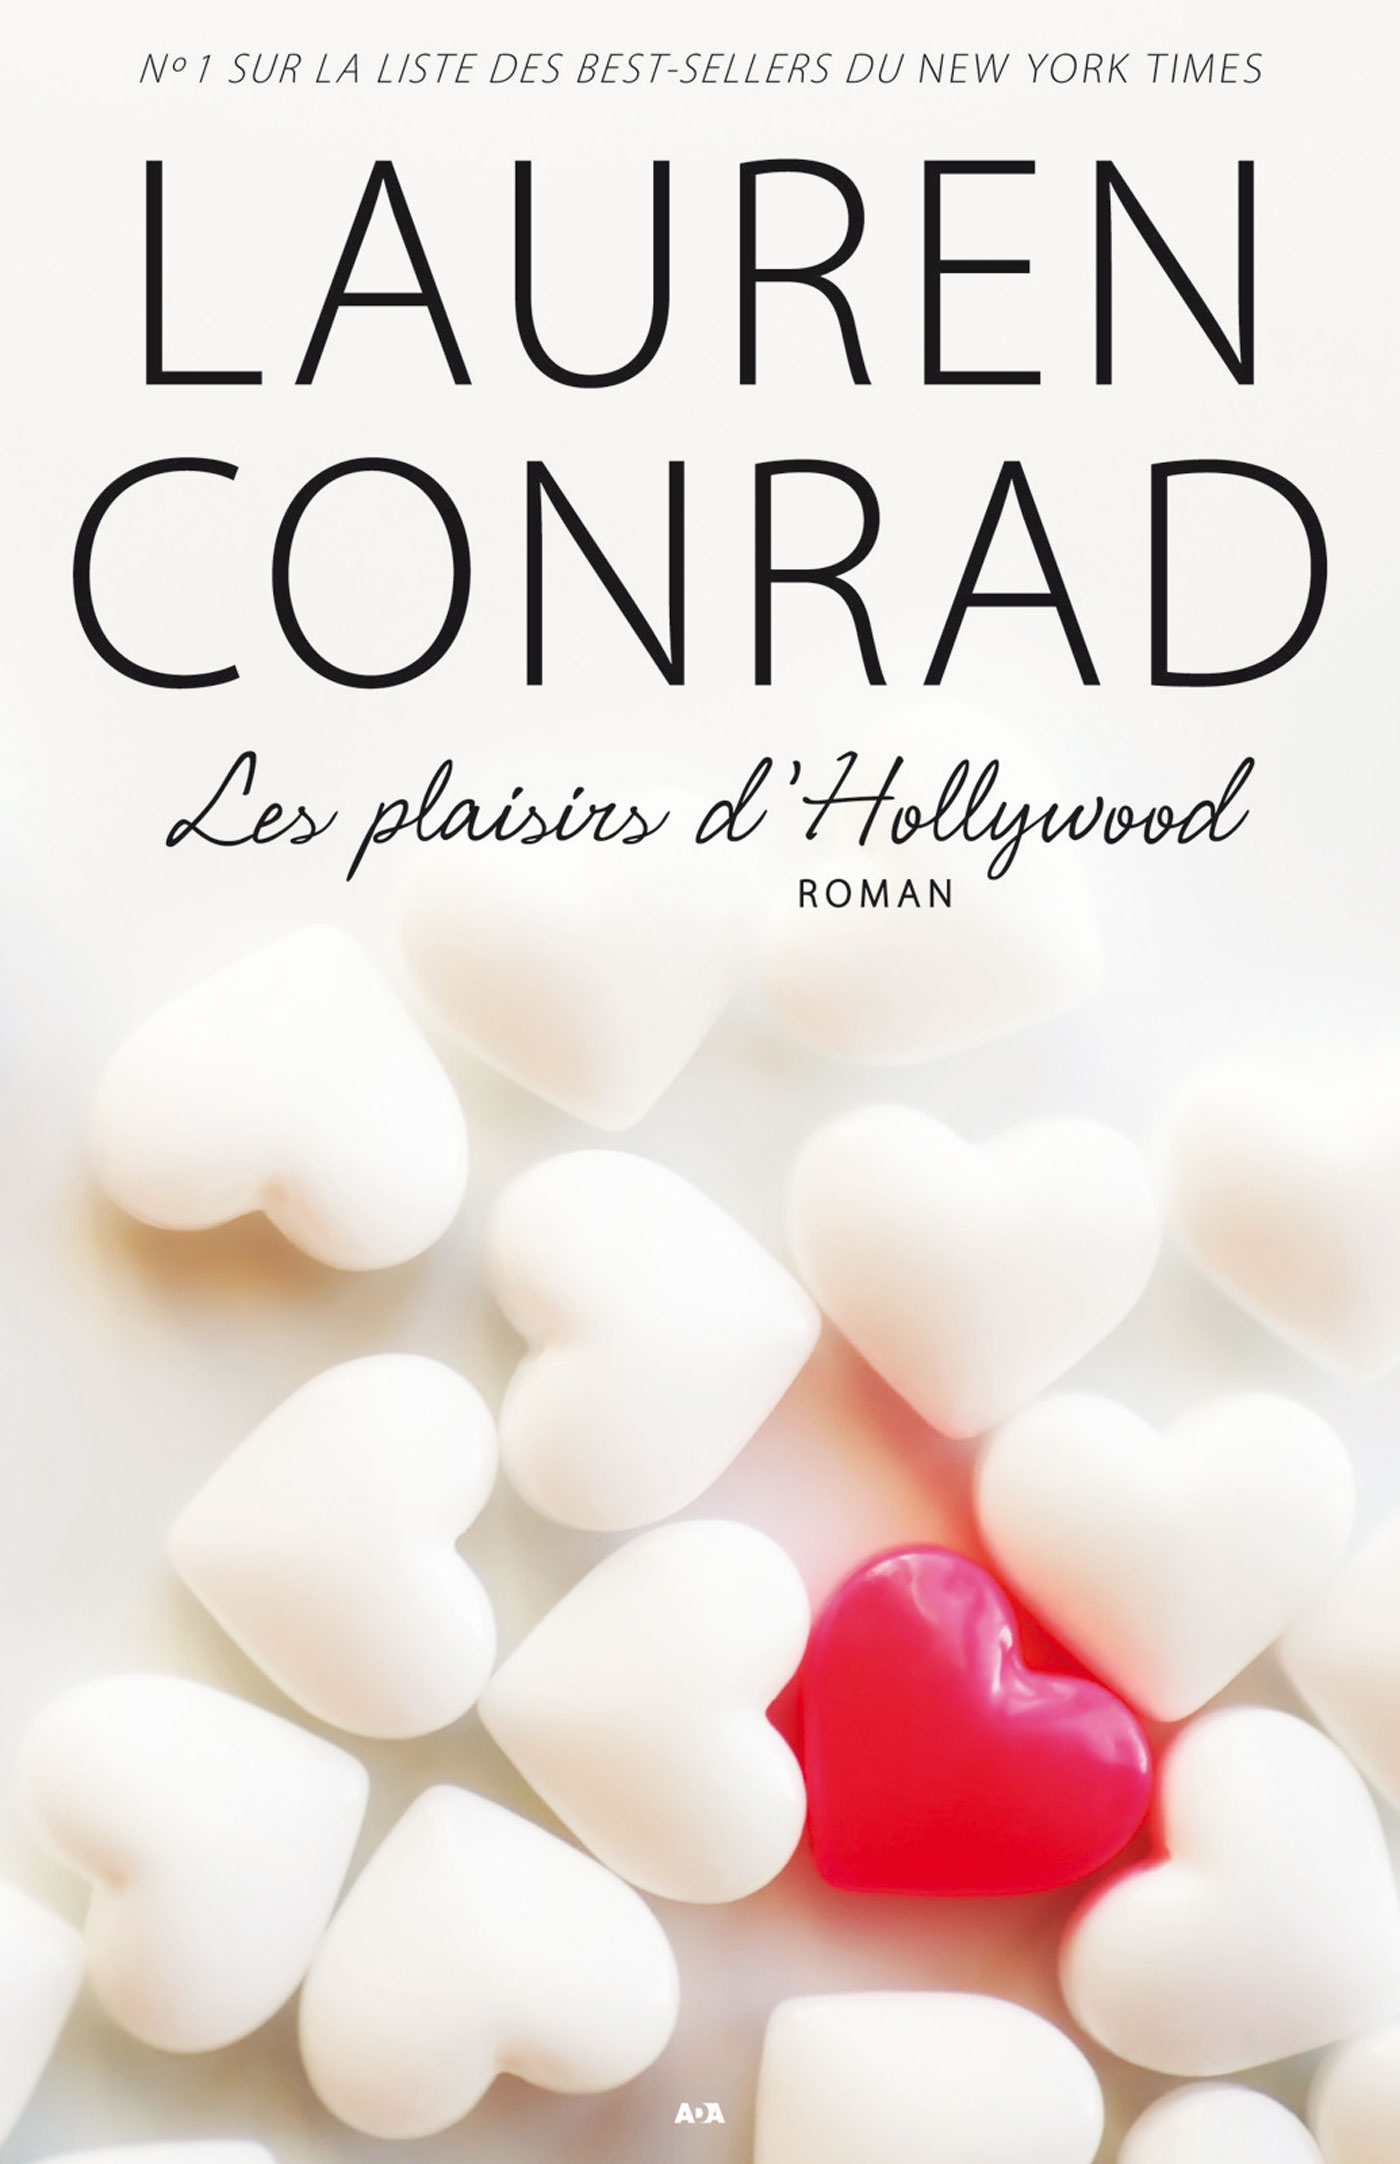 Les plaisirs d'Hollywood